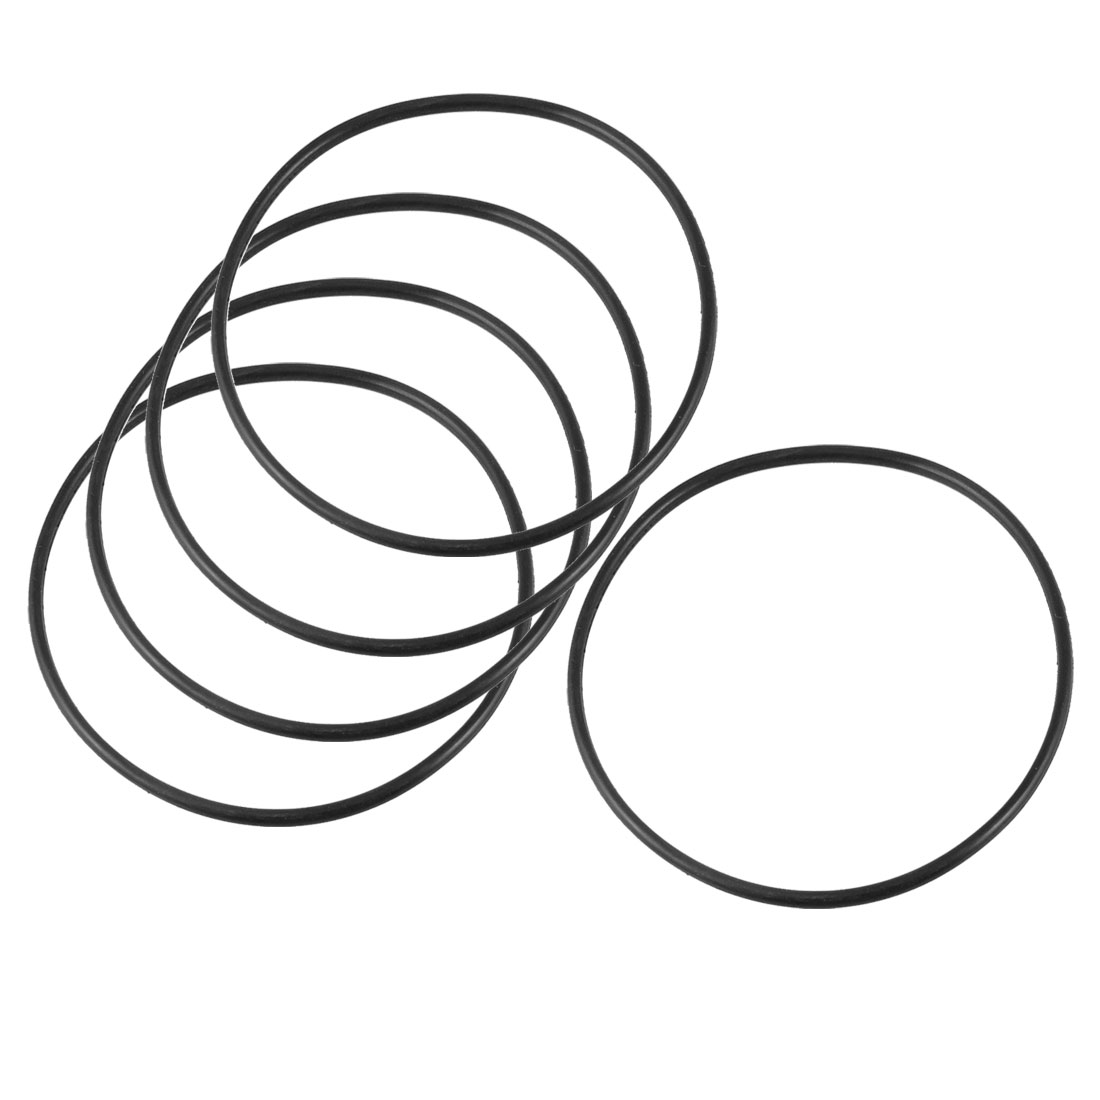 115mm x 3.5mm x 108mm Rubber Sealing Oil Filter O Rings Gaskets 5 Pcs